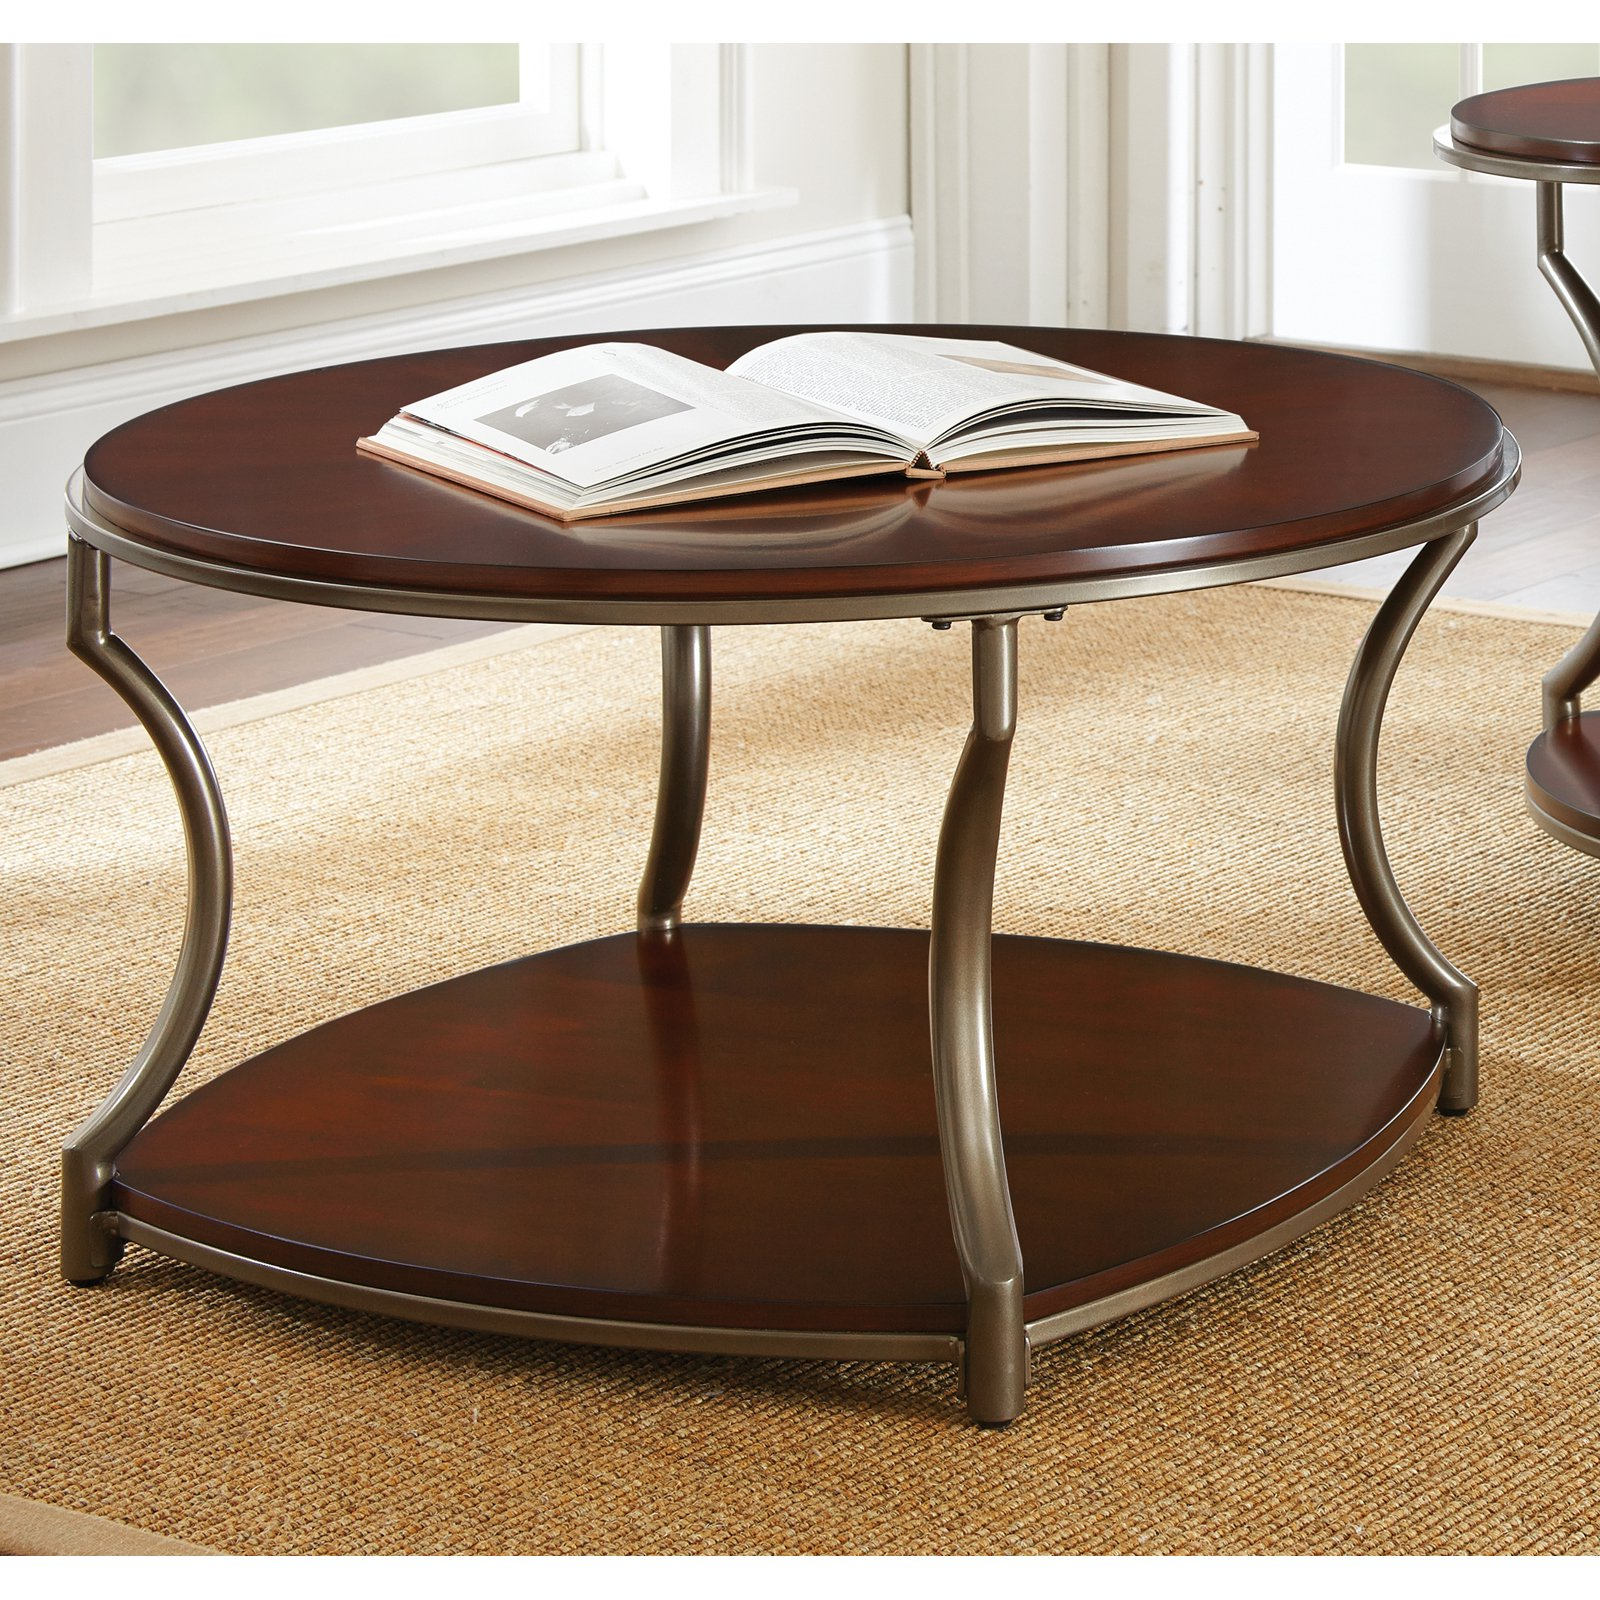 Steve Silver Maryland Cocktail Table - Medium Cherry